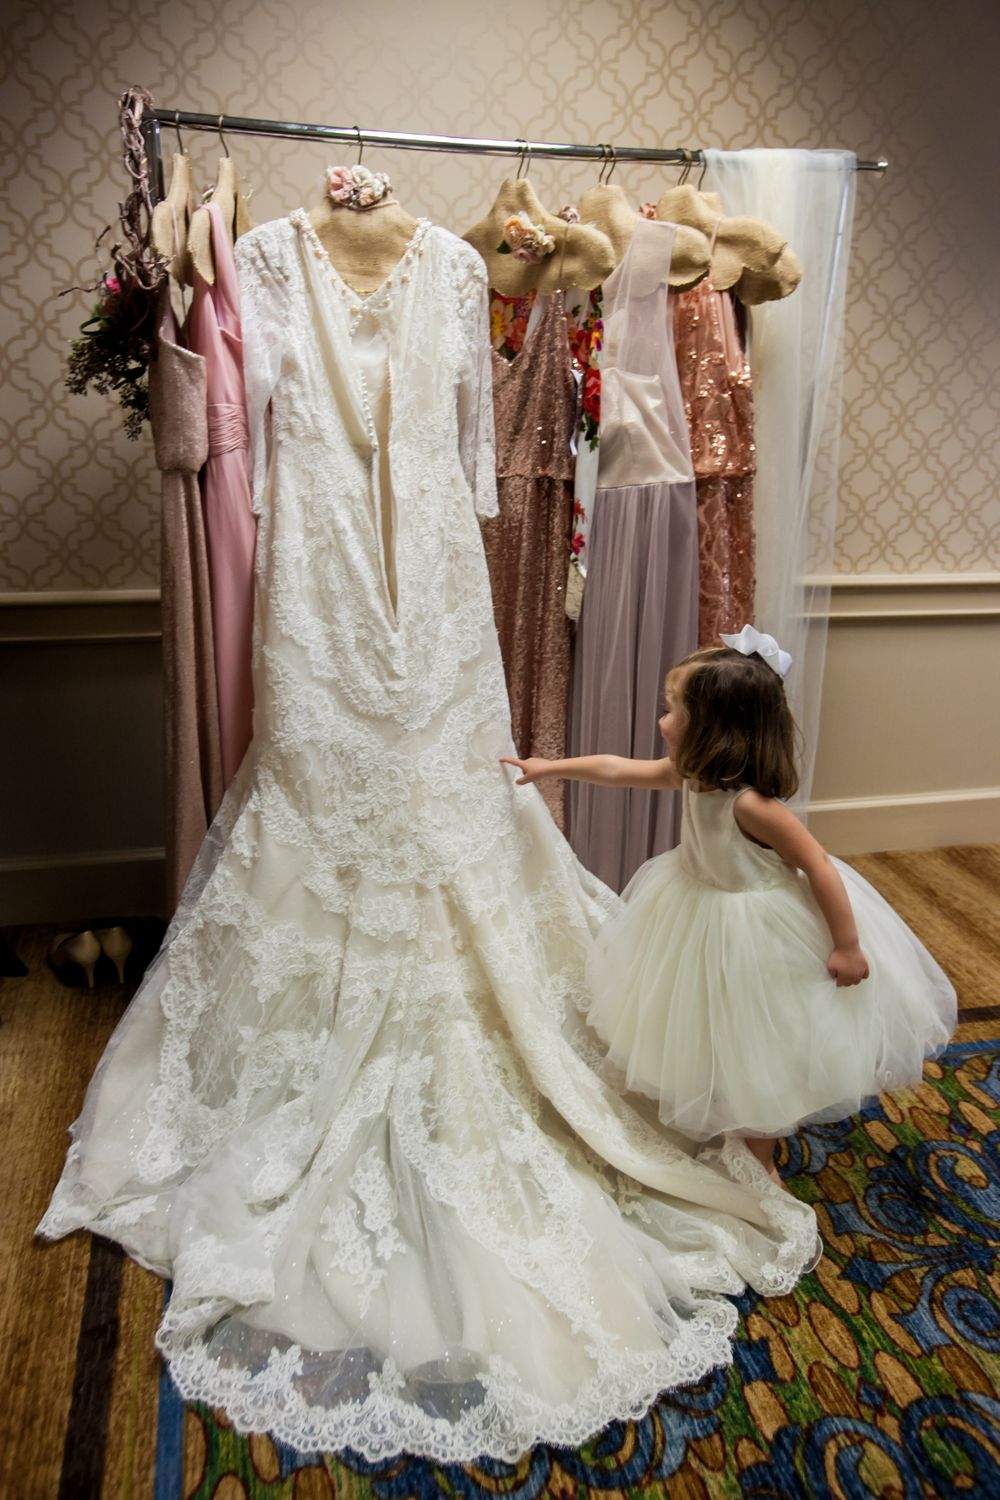 The flower girl examines the bride's wedding dress while they get ready at Francis Marion Hotel in Charleston, SC